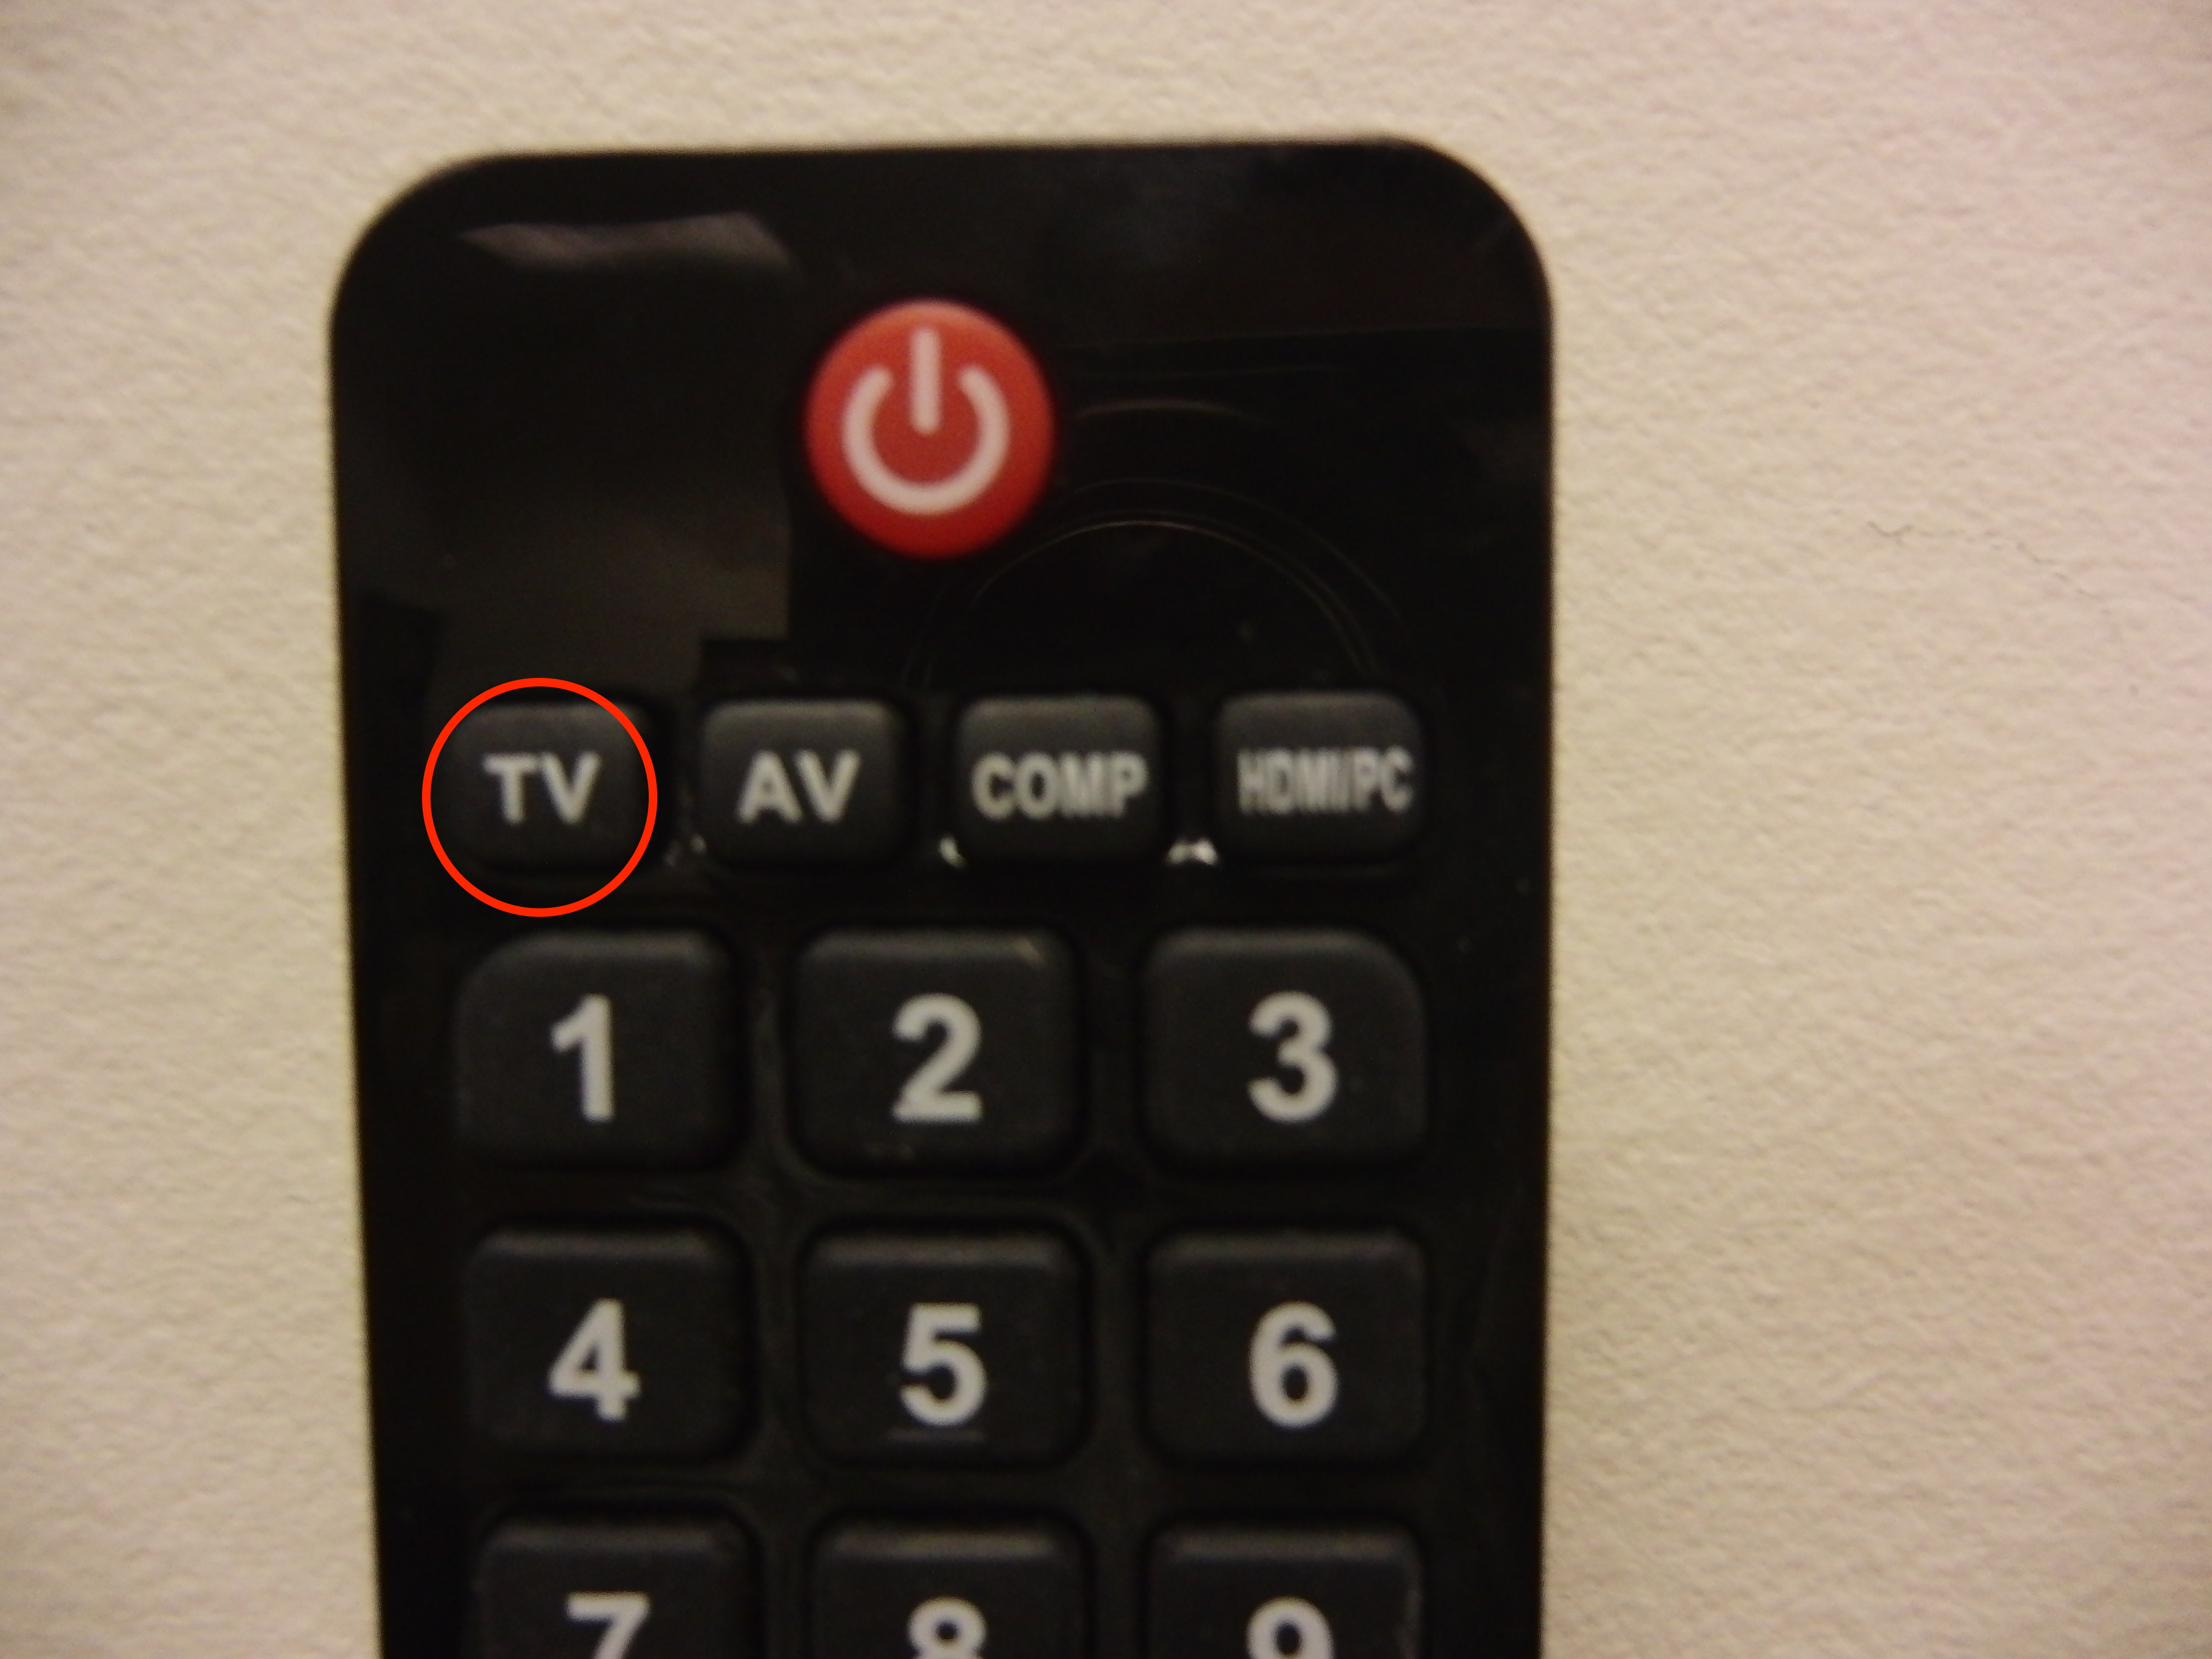 Photo of the top of the tv remote with the tv option highlighted